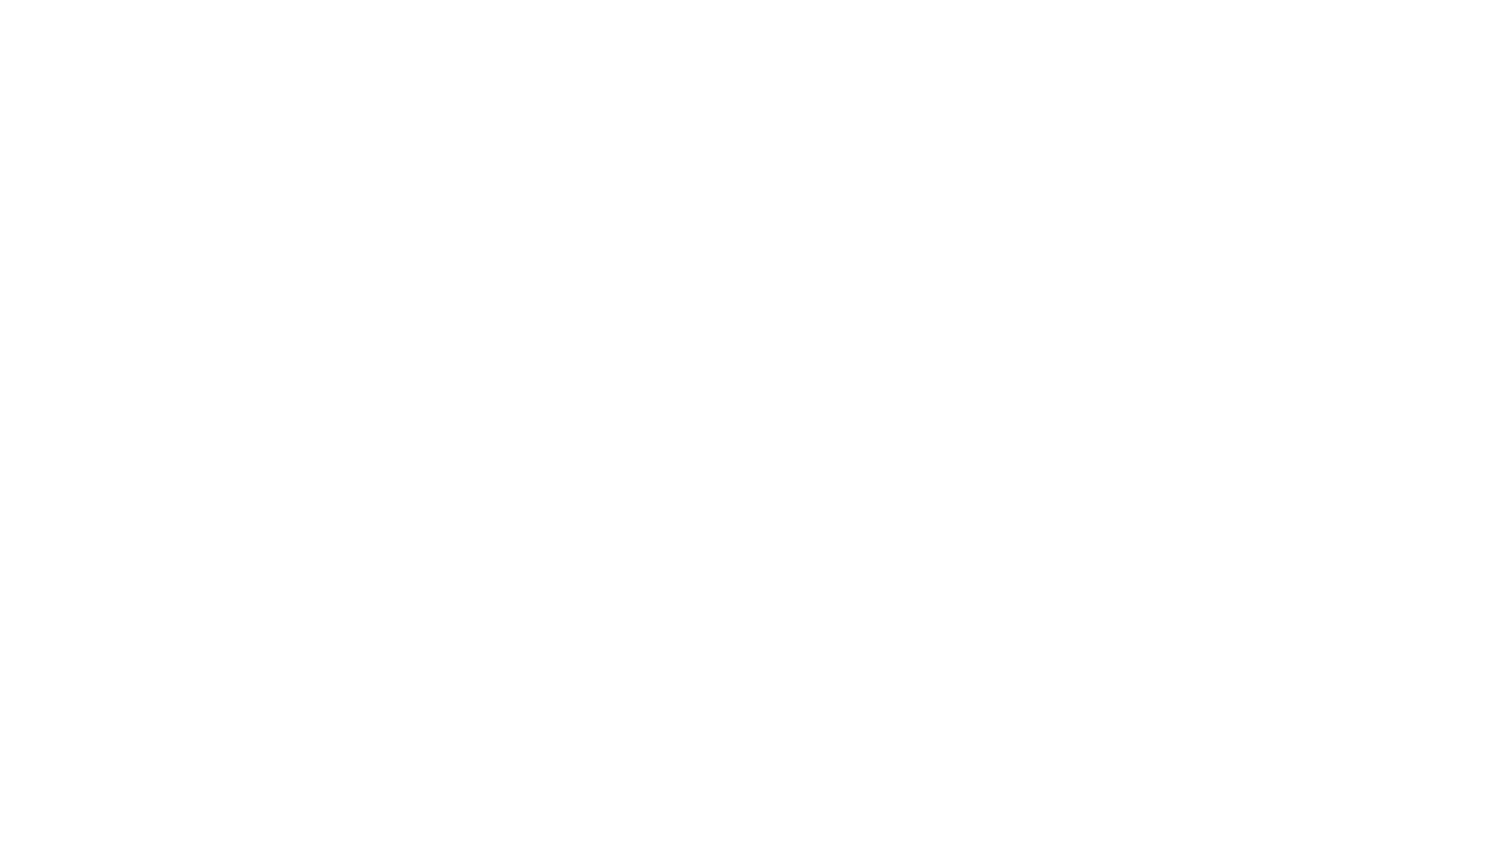 Chautauqua Road Band